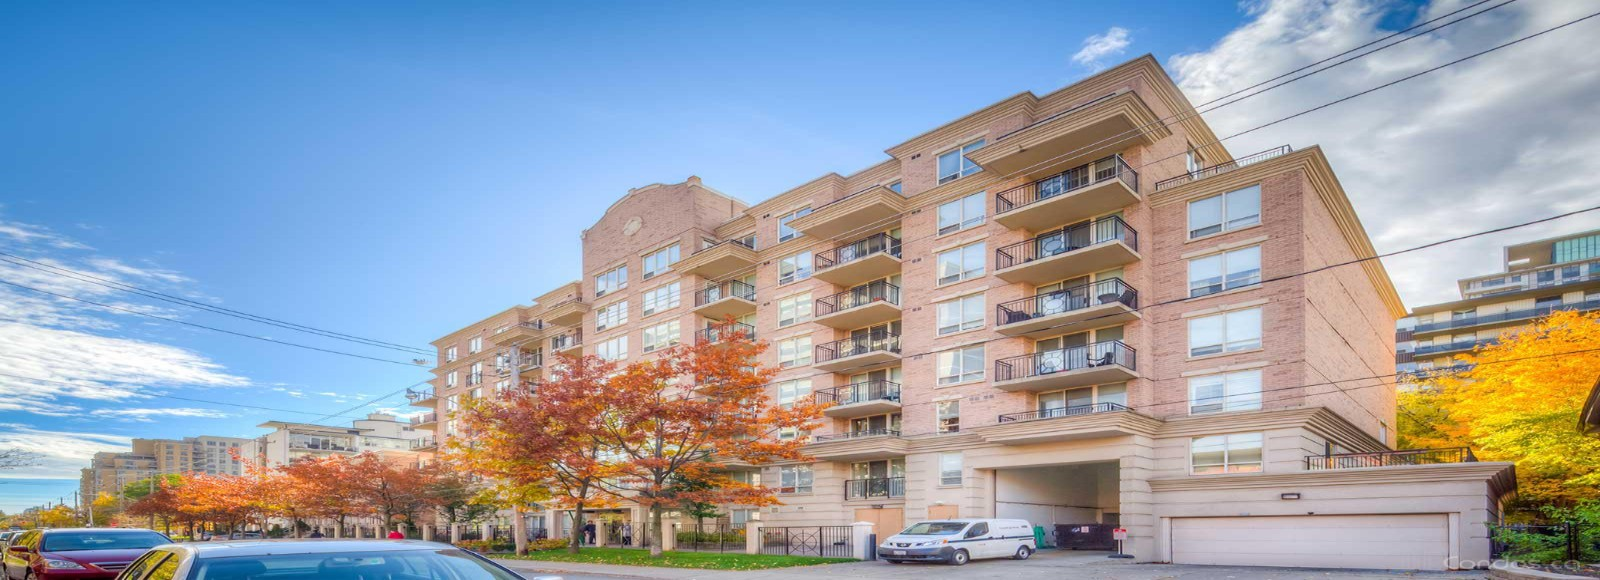 188 Redpath Avenue Condos For Sale